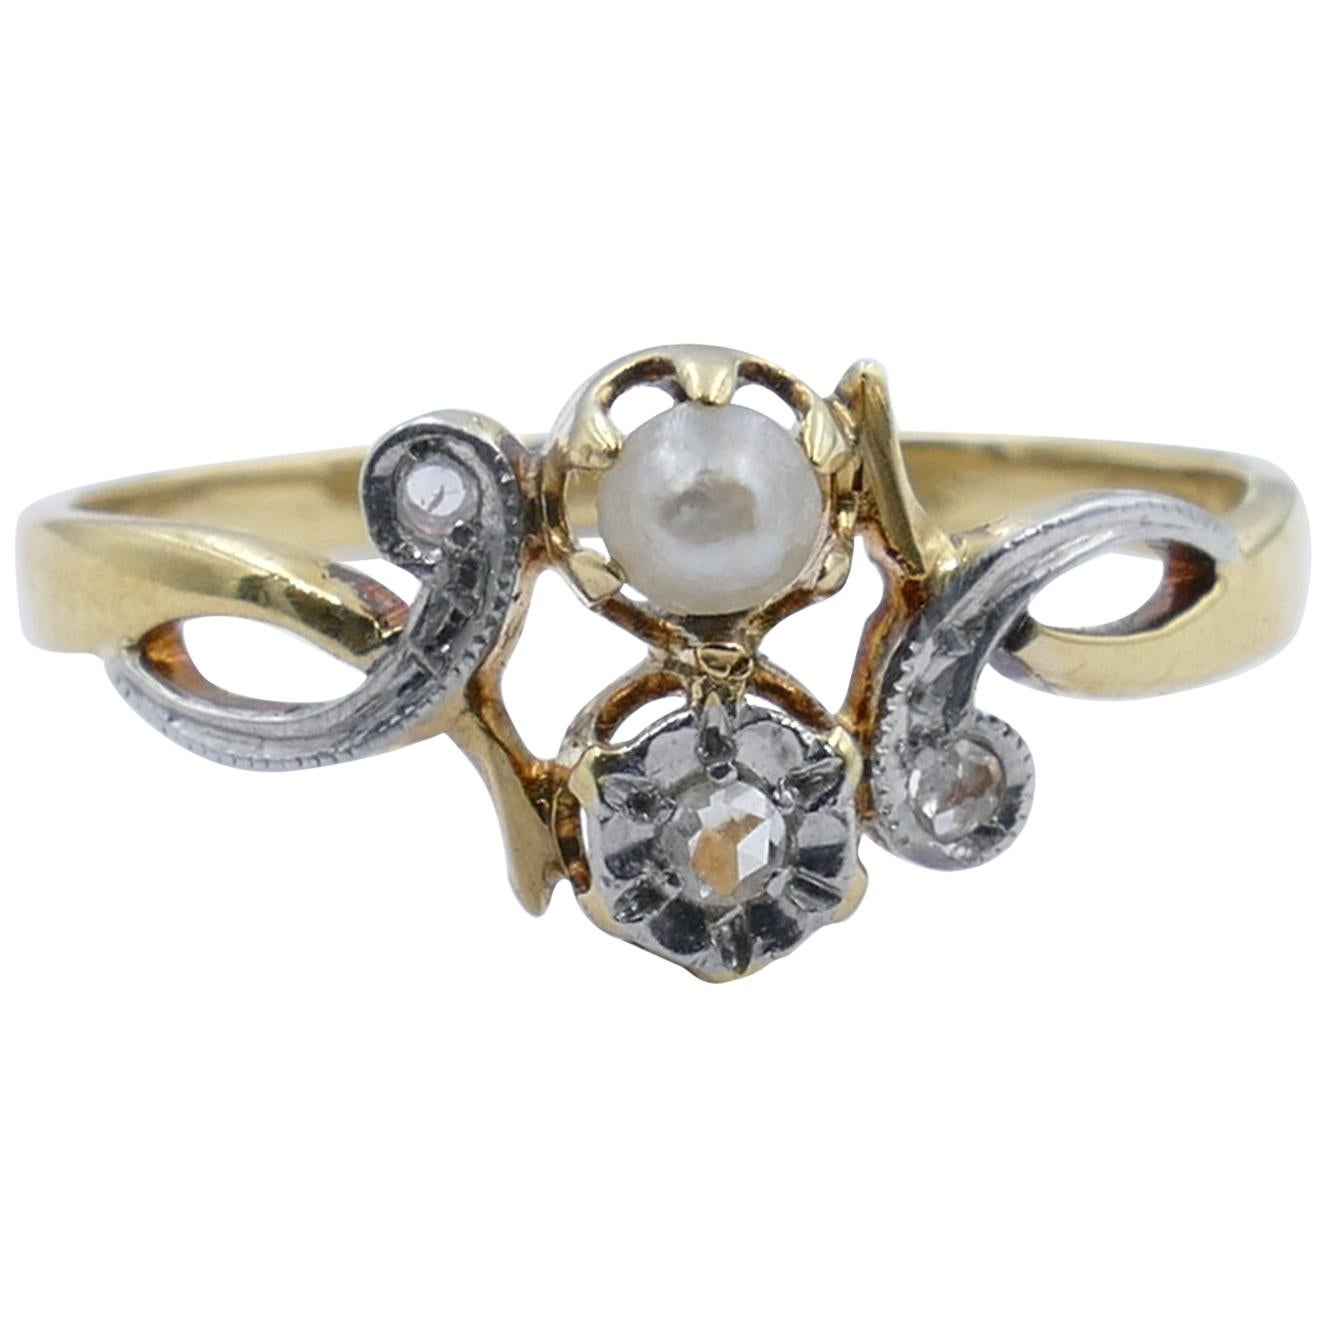 Antique French 18 Carat Yellow and White Gold Pearl and Diamond Ring